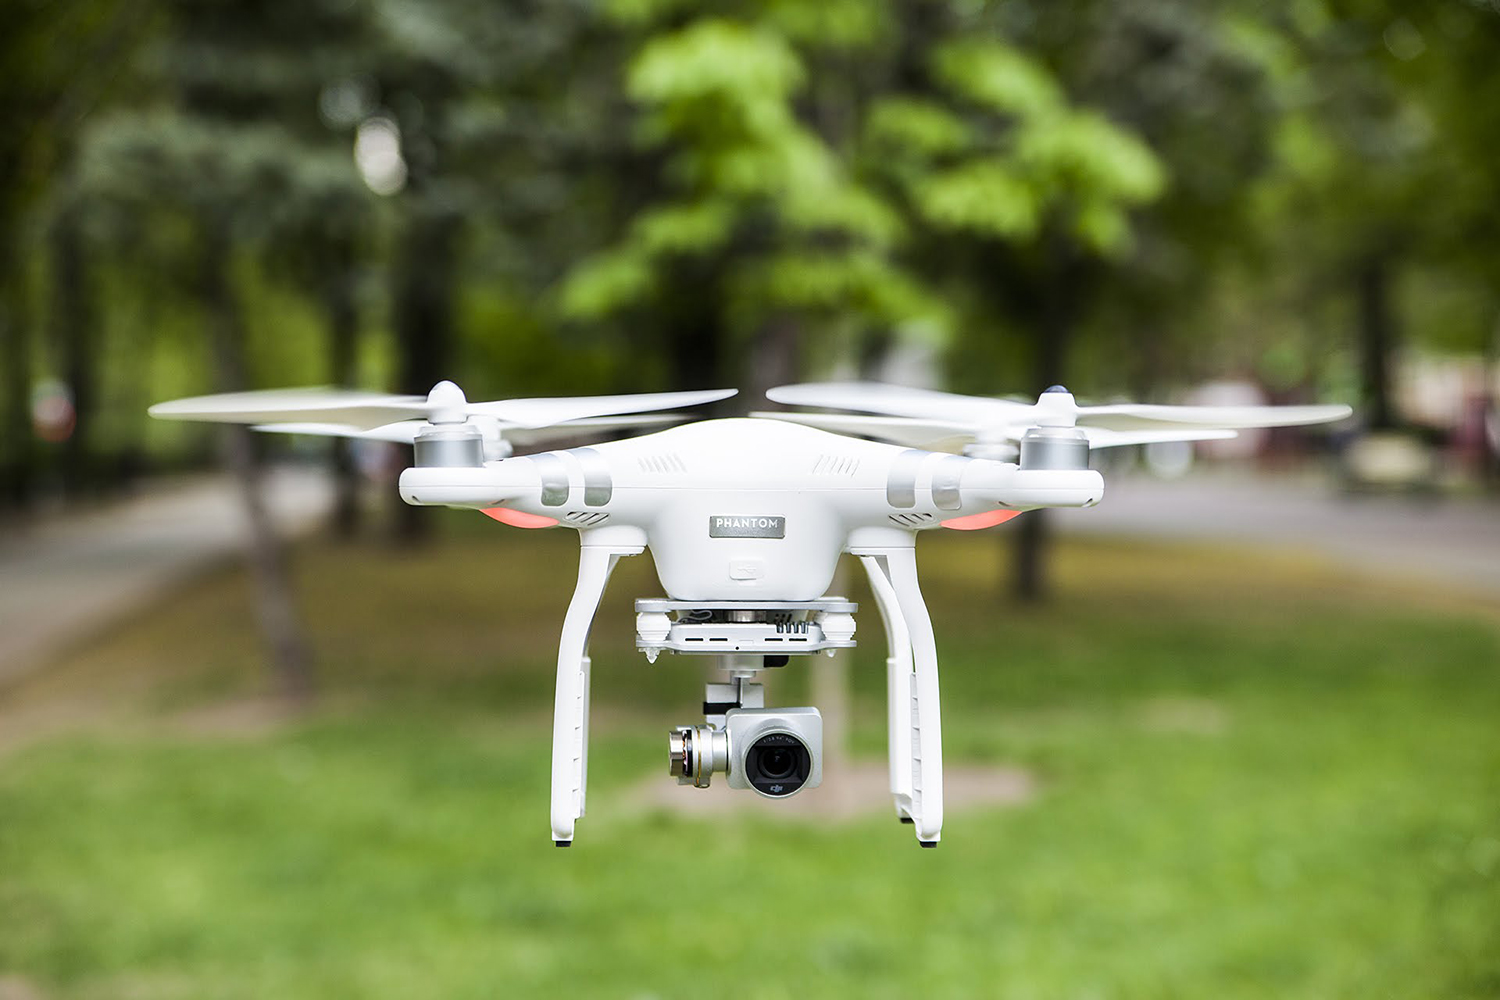 Dji To Stop You From Flying Your Drone In Restricted Airspace